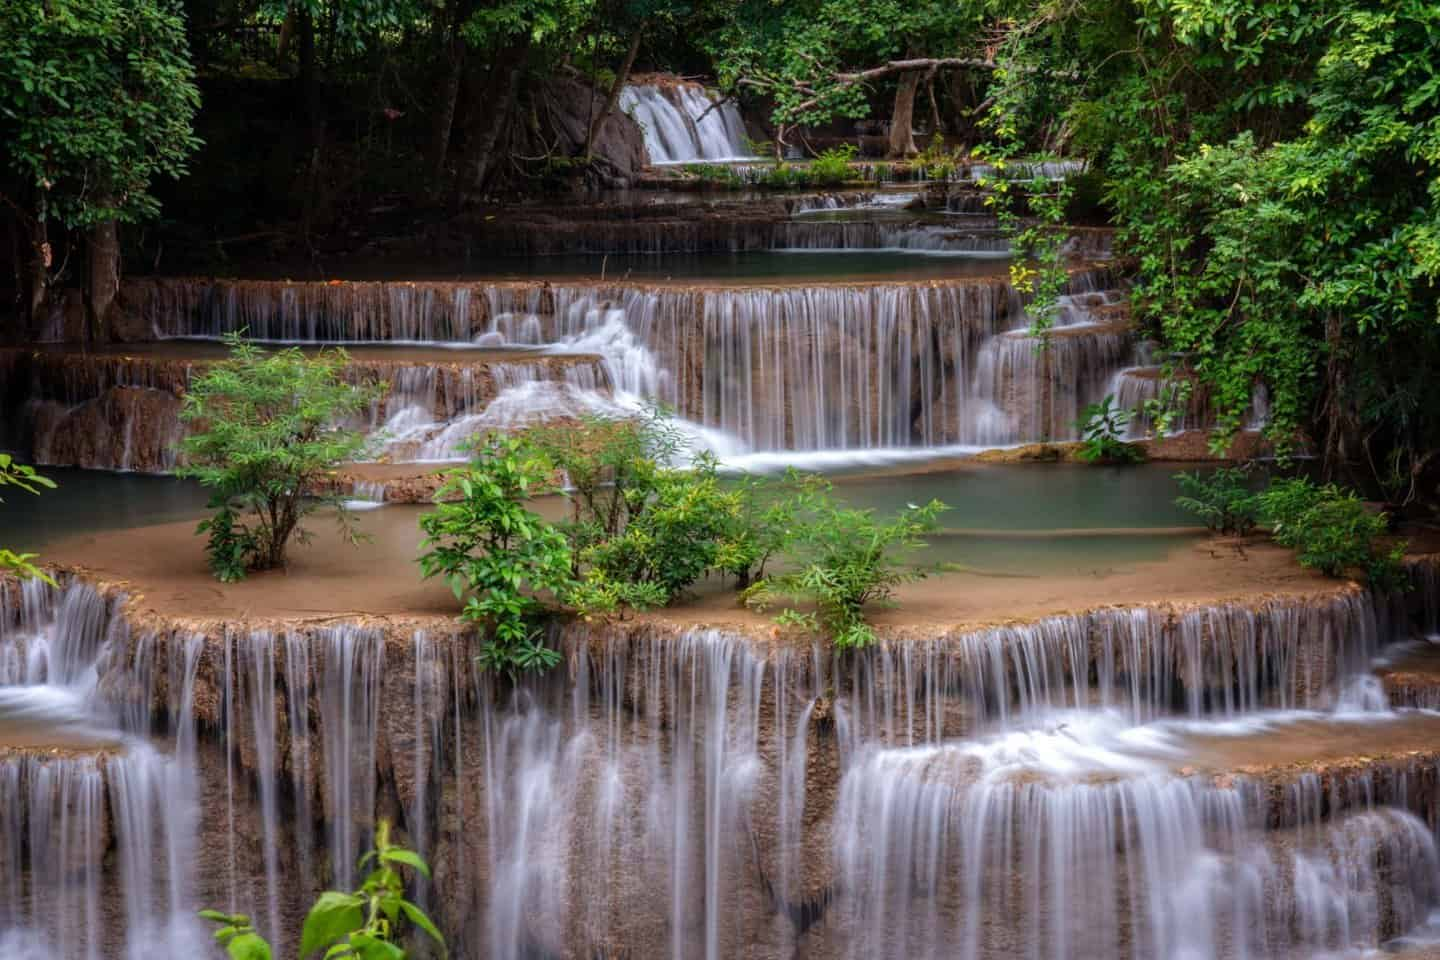 Level 4 (Chat Kaew) of Huay Mae Khamin Waterfall, Thailand